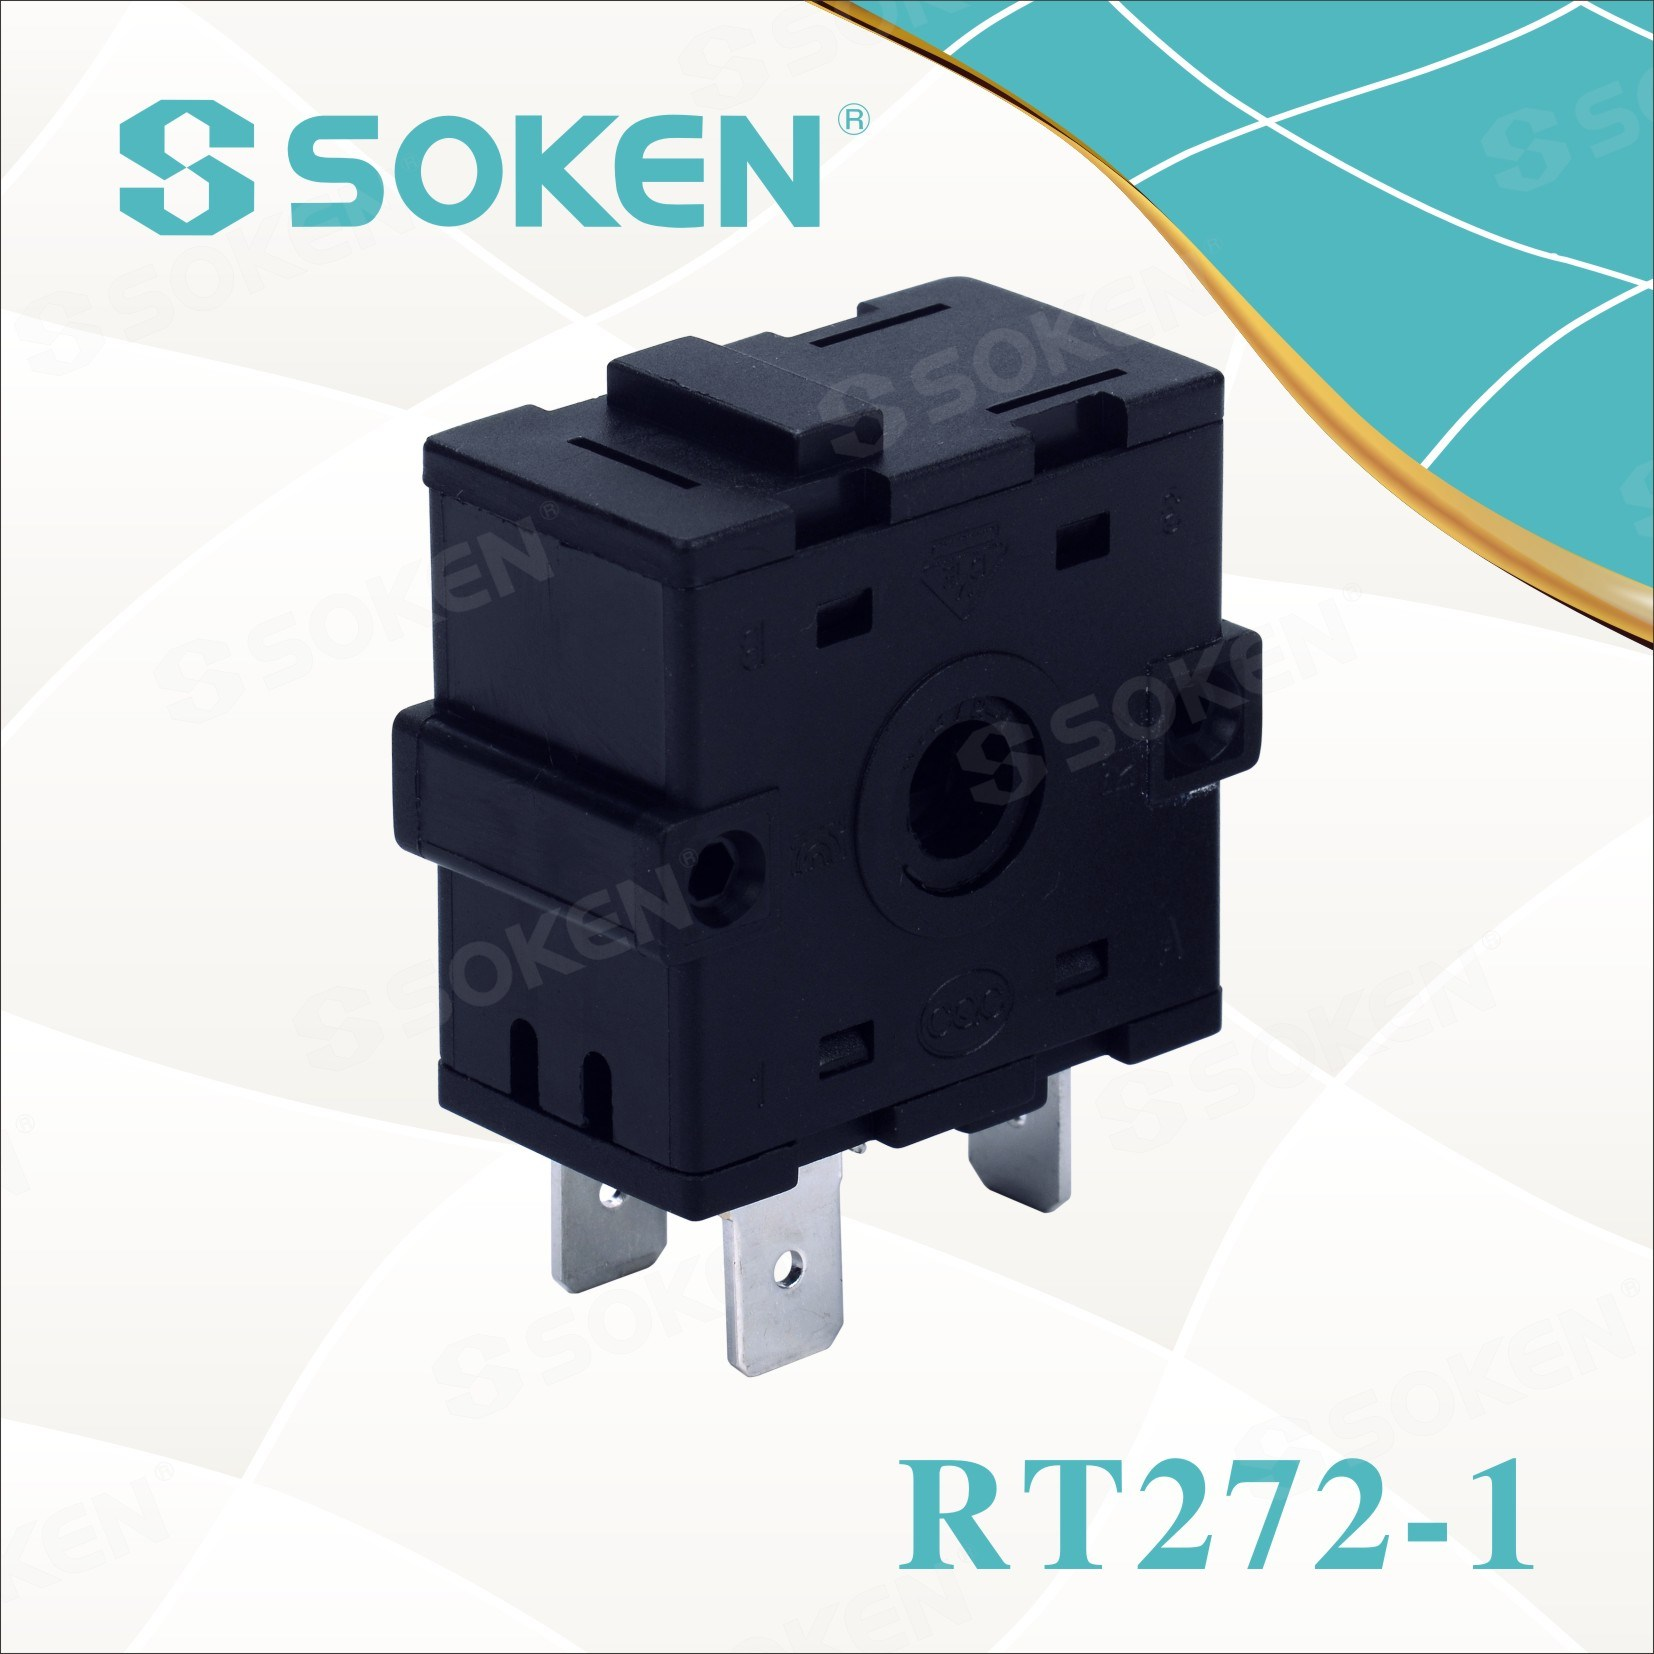 Soken 8 Position Rope Chain Rotary Switch